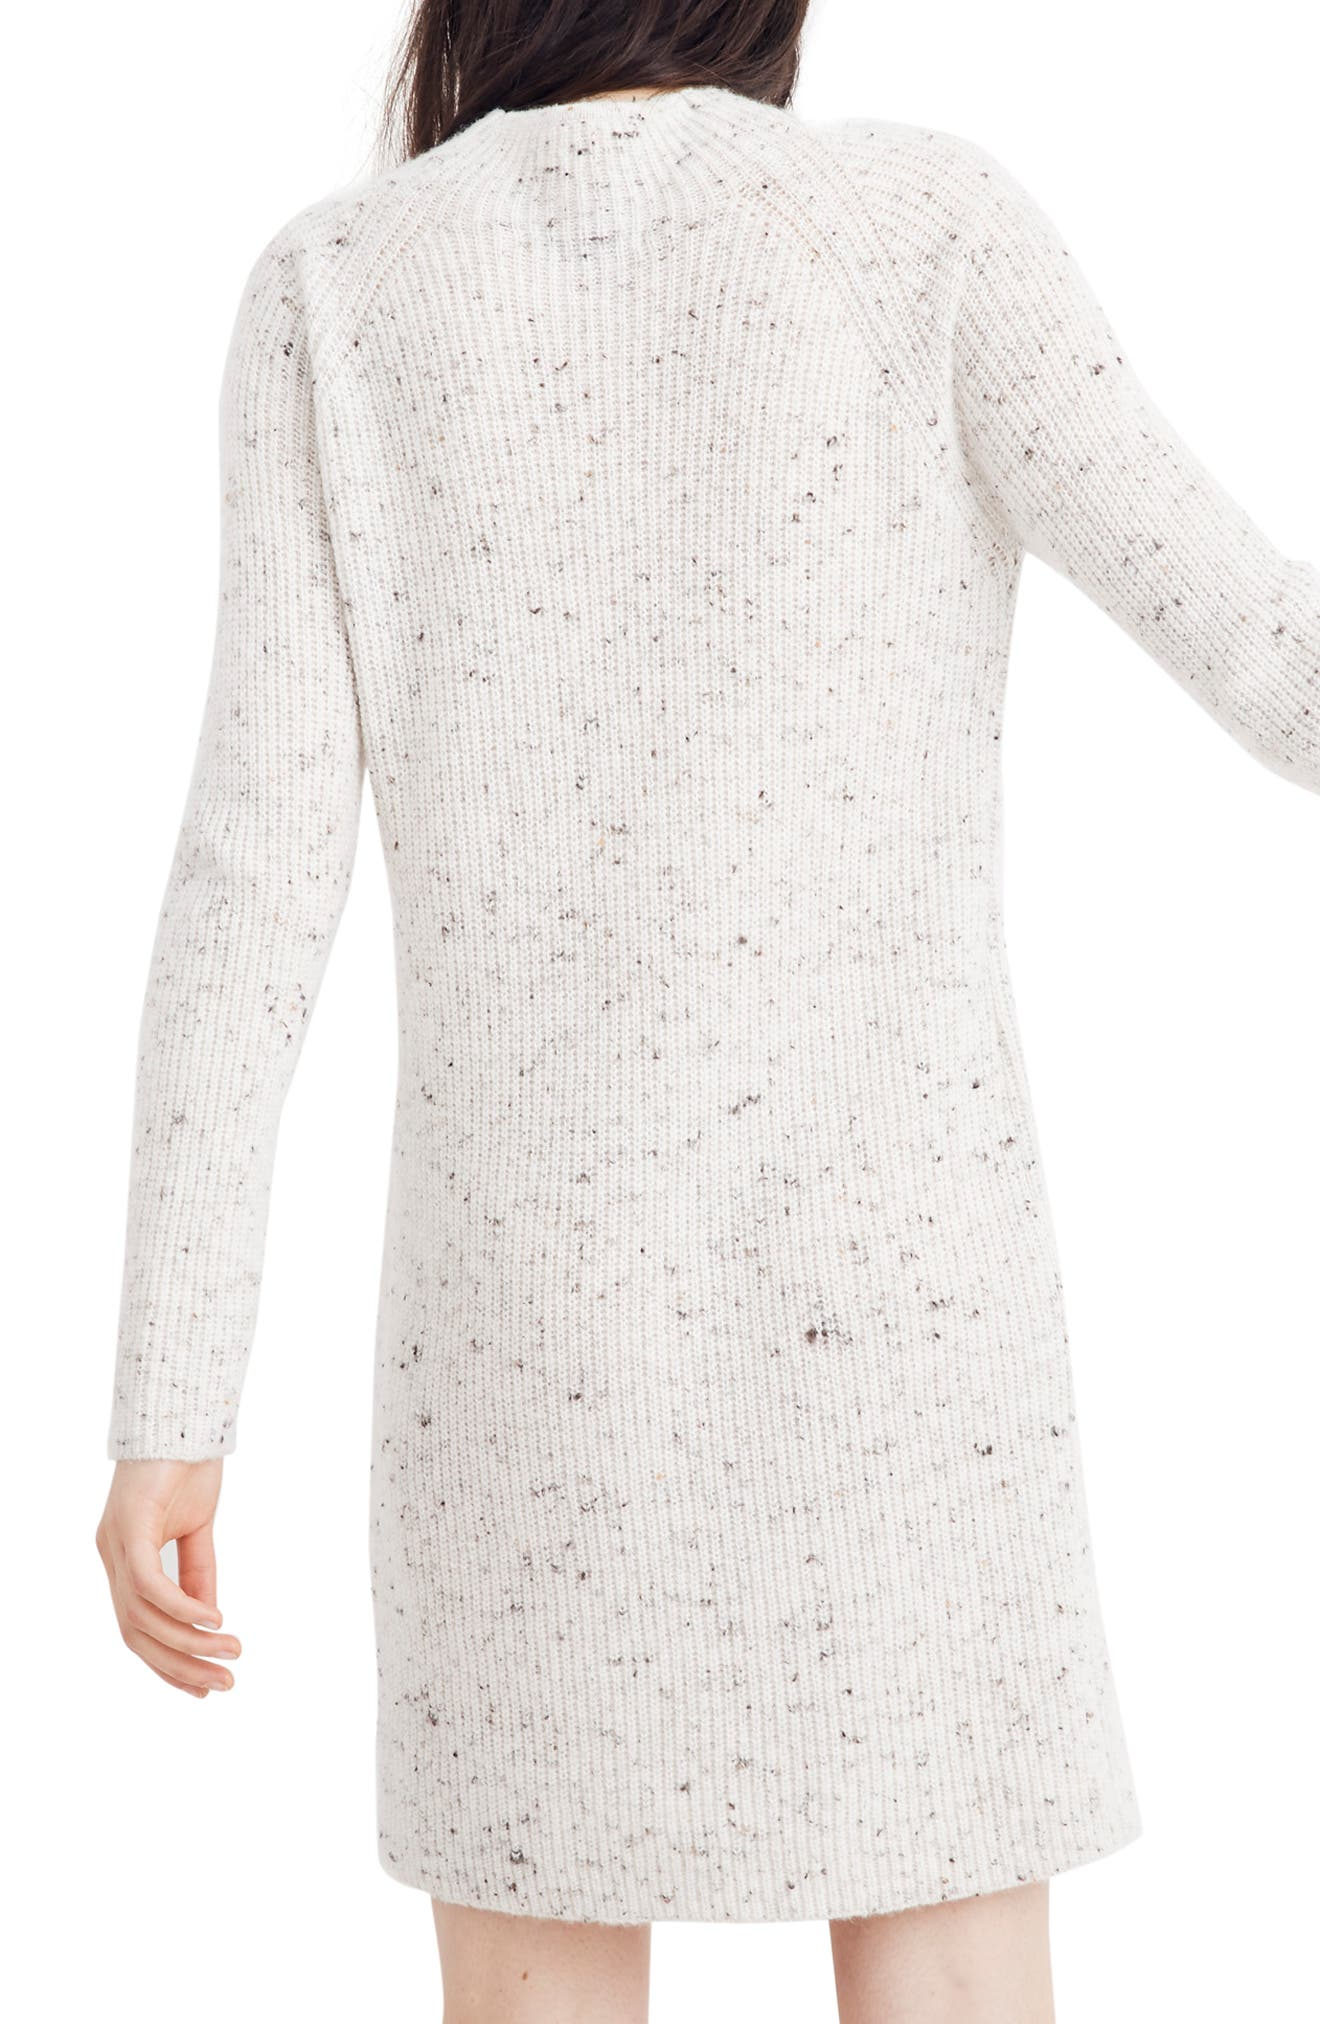 Northfield Donegal Mock Neck Sweater Dress,                             Alternate thumbnail 3, color,                             DONEGAL STORM